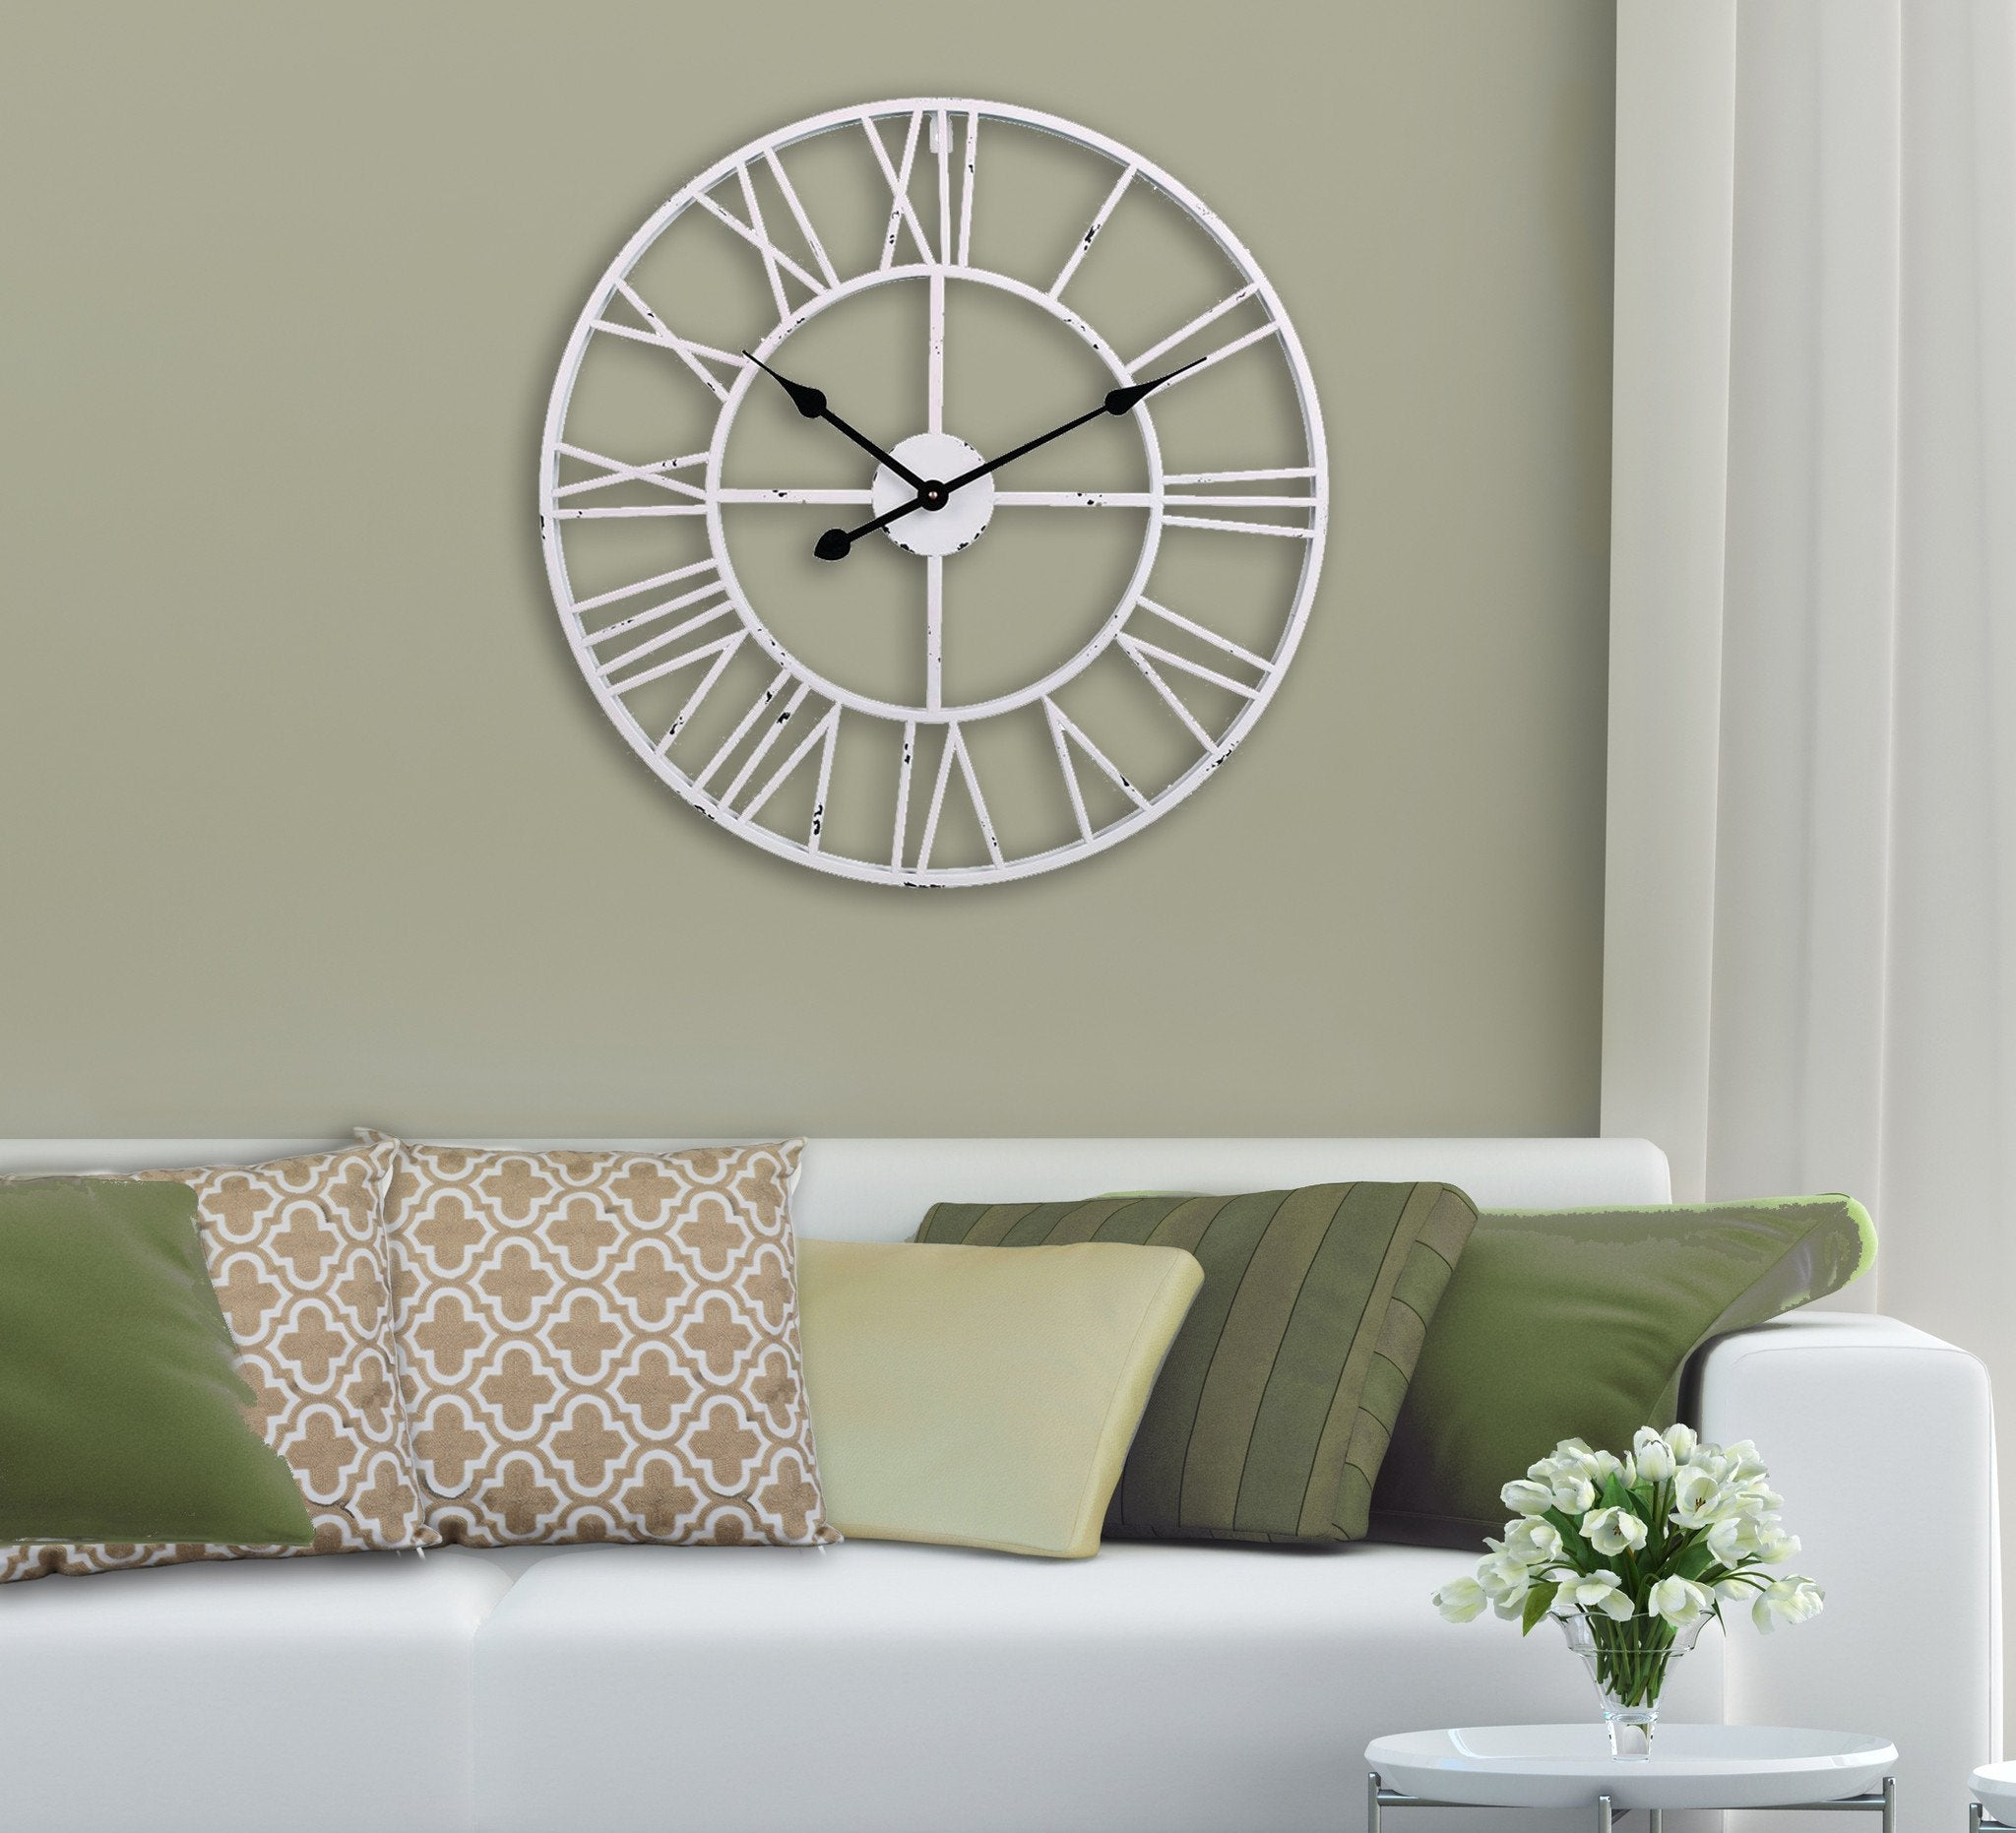 "Roman Round Wall Clock, Distressed Finish, Antique White, 24"" or 30"", Loft97"